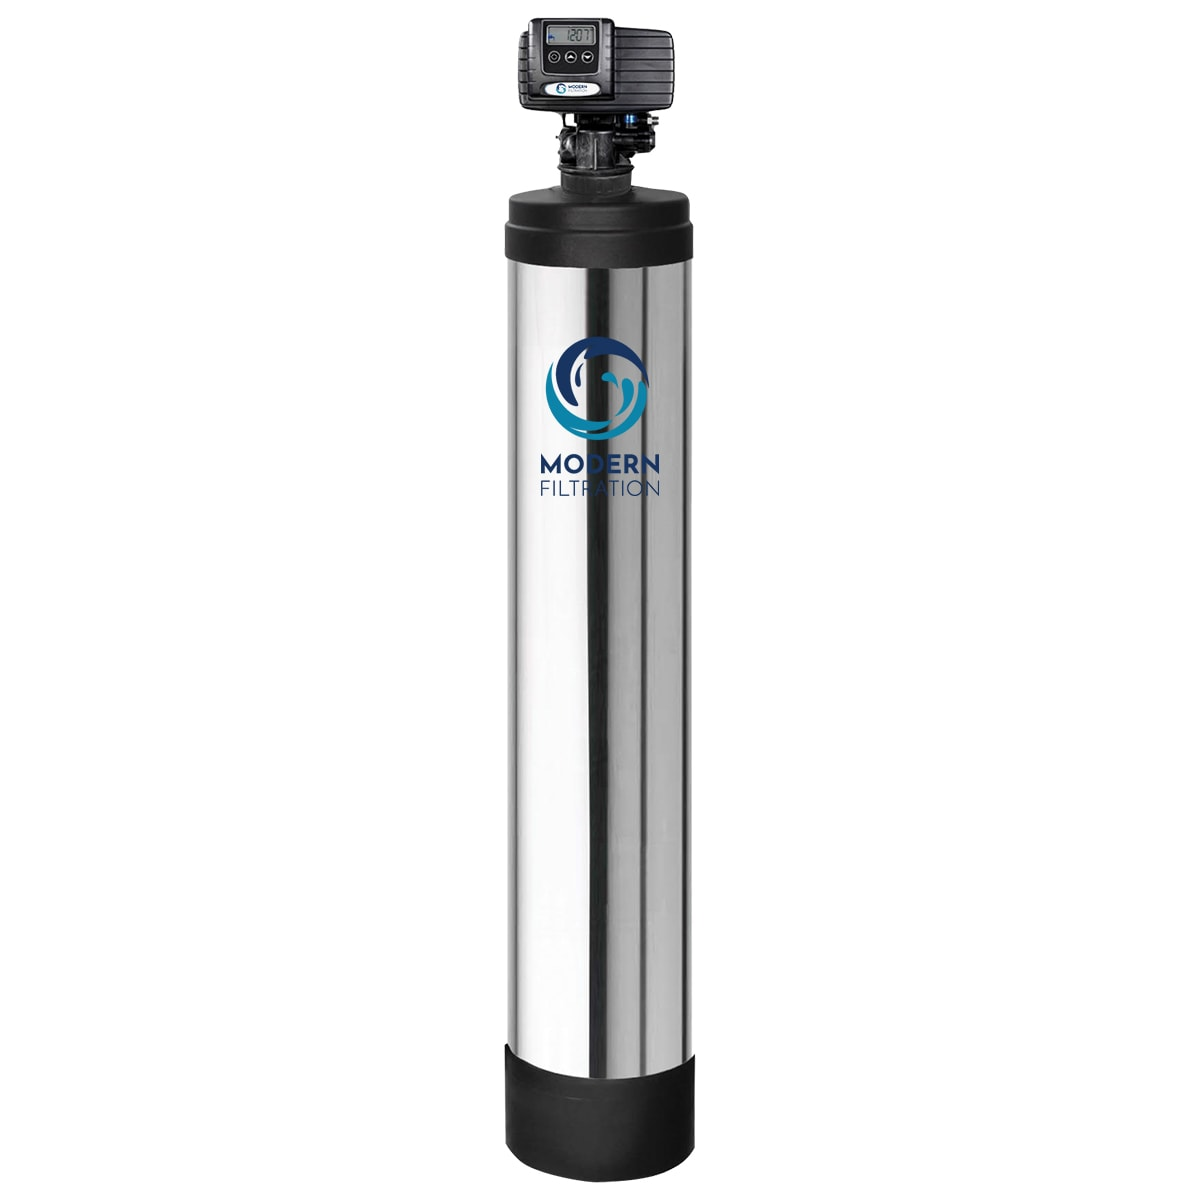 Premier 6 Stage Municipal Water Filtration System